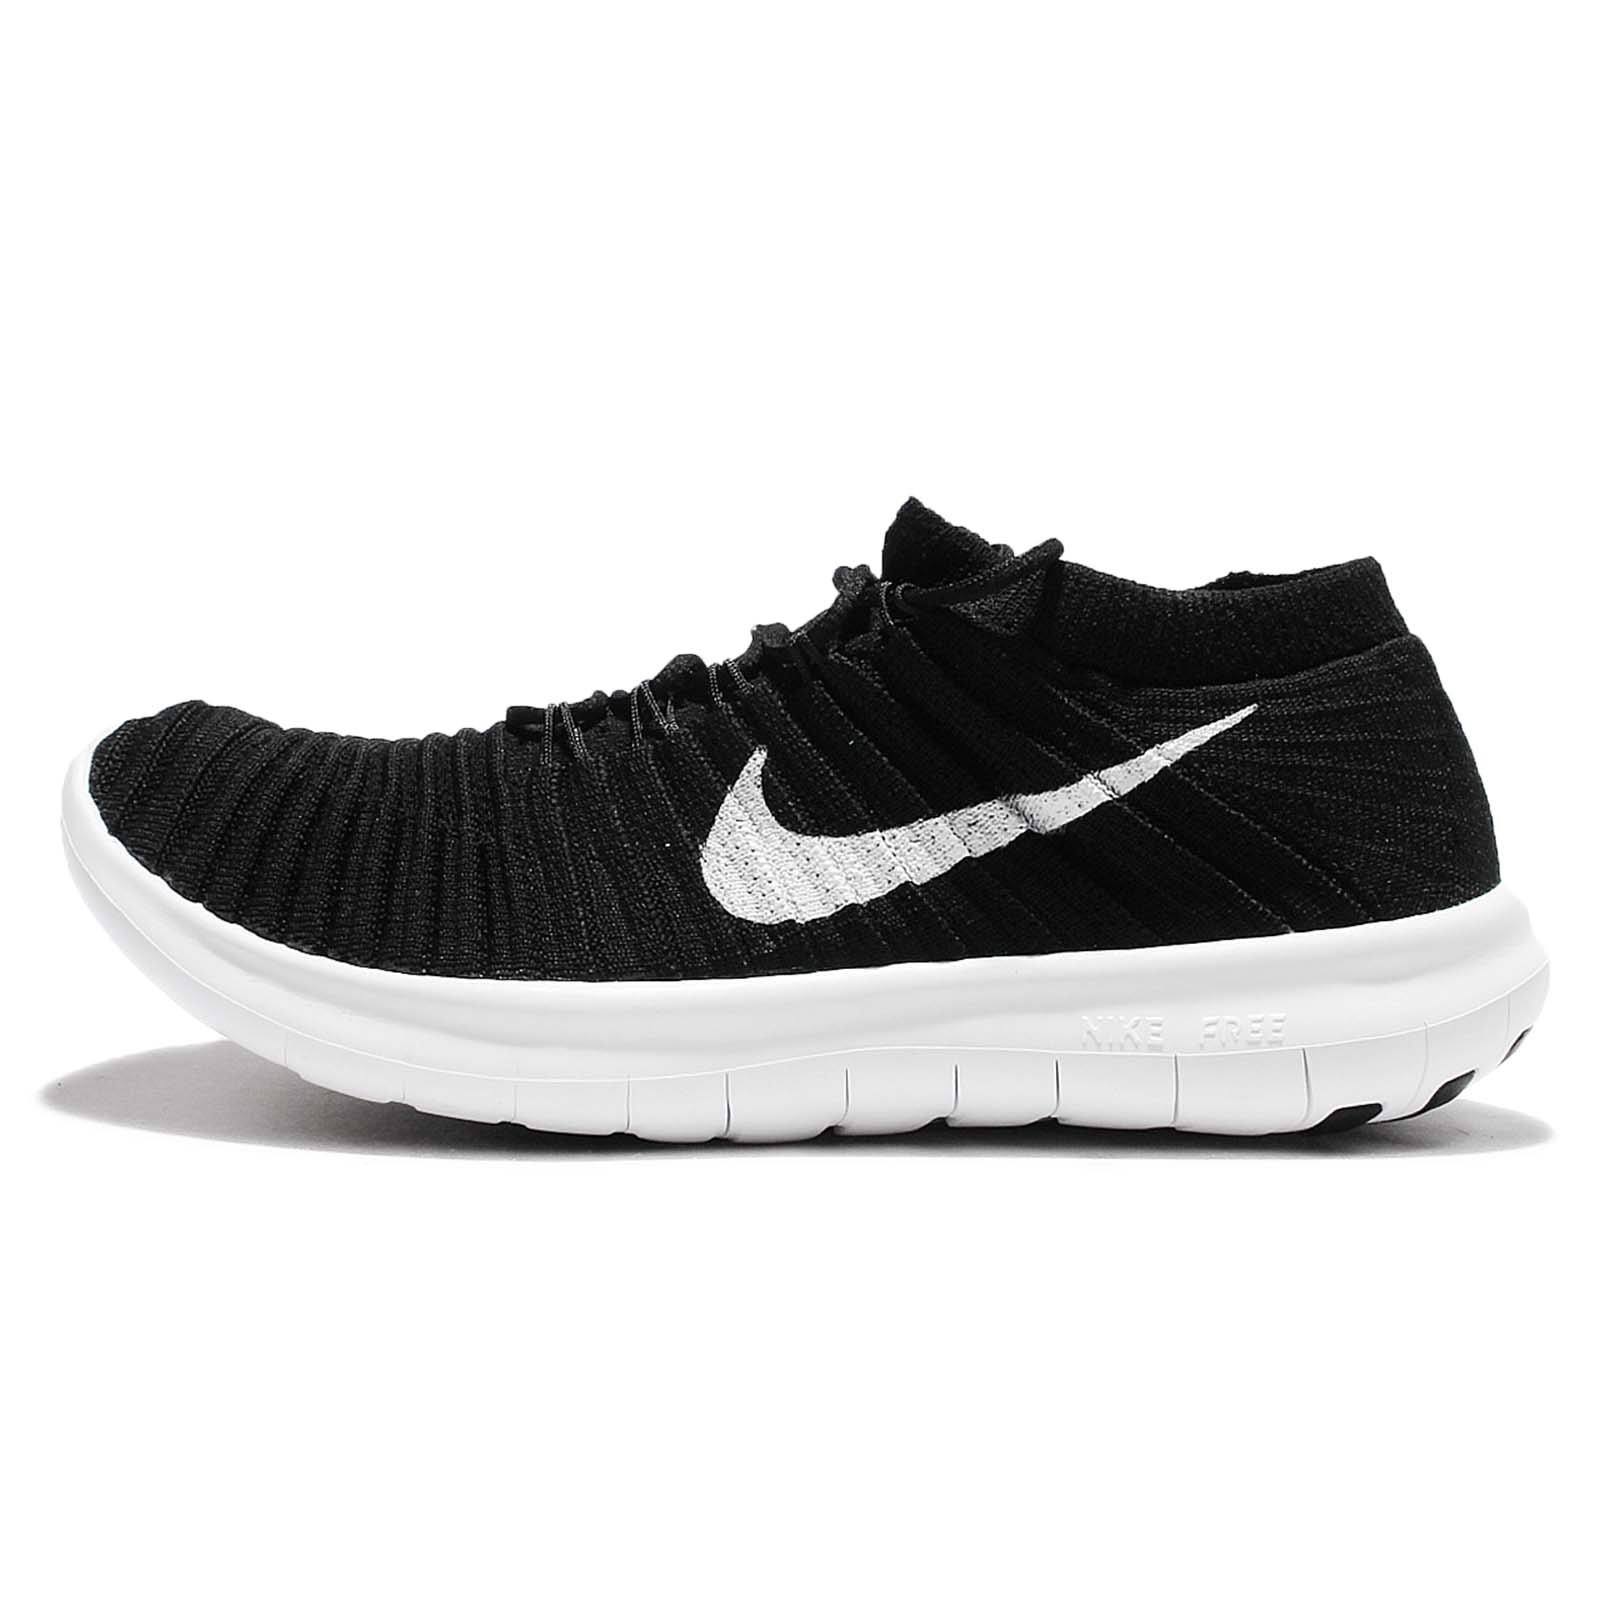 cheap for discount 82f96 8bb2e Galleon - Nike Women s Free Running Motion Flyknit Shoes, Black White Volt  Dark Grey - 8.5 B(M) US